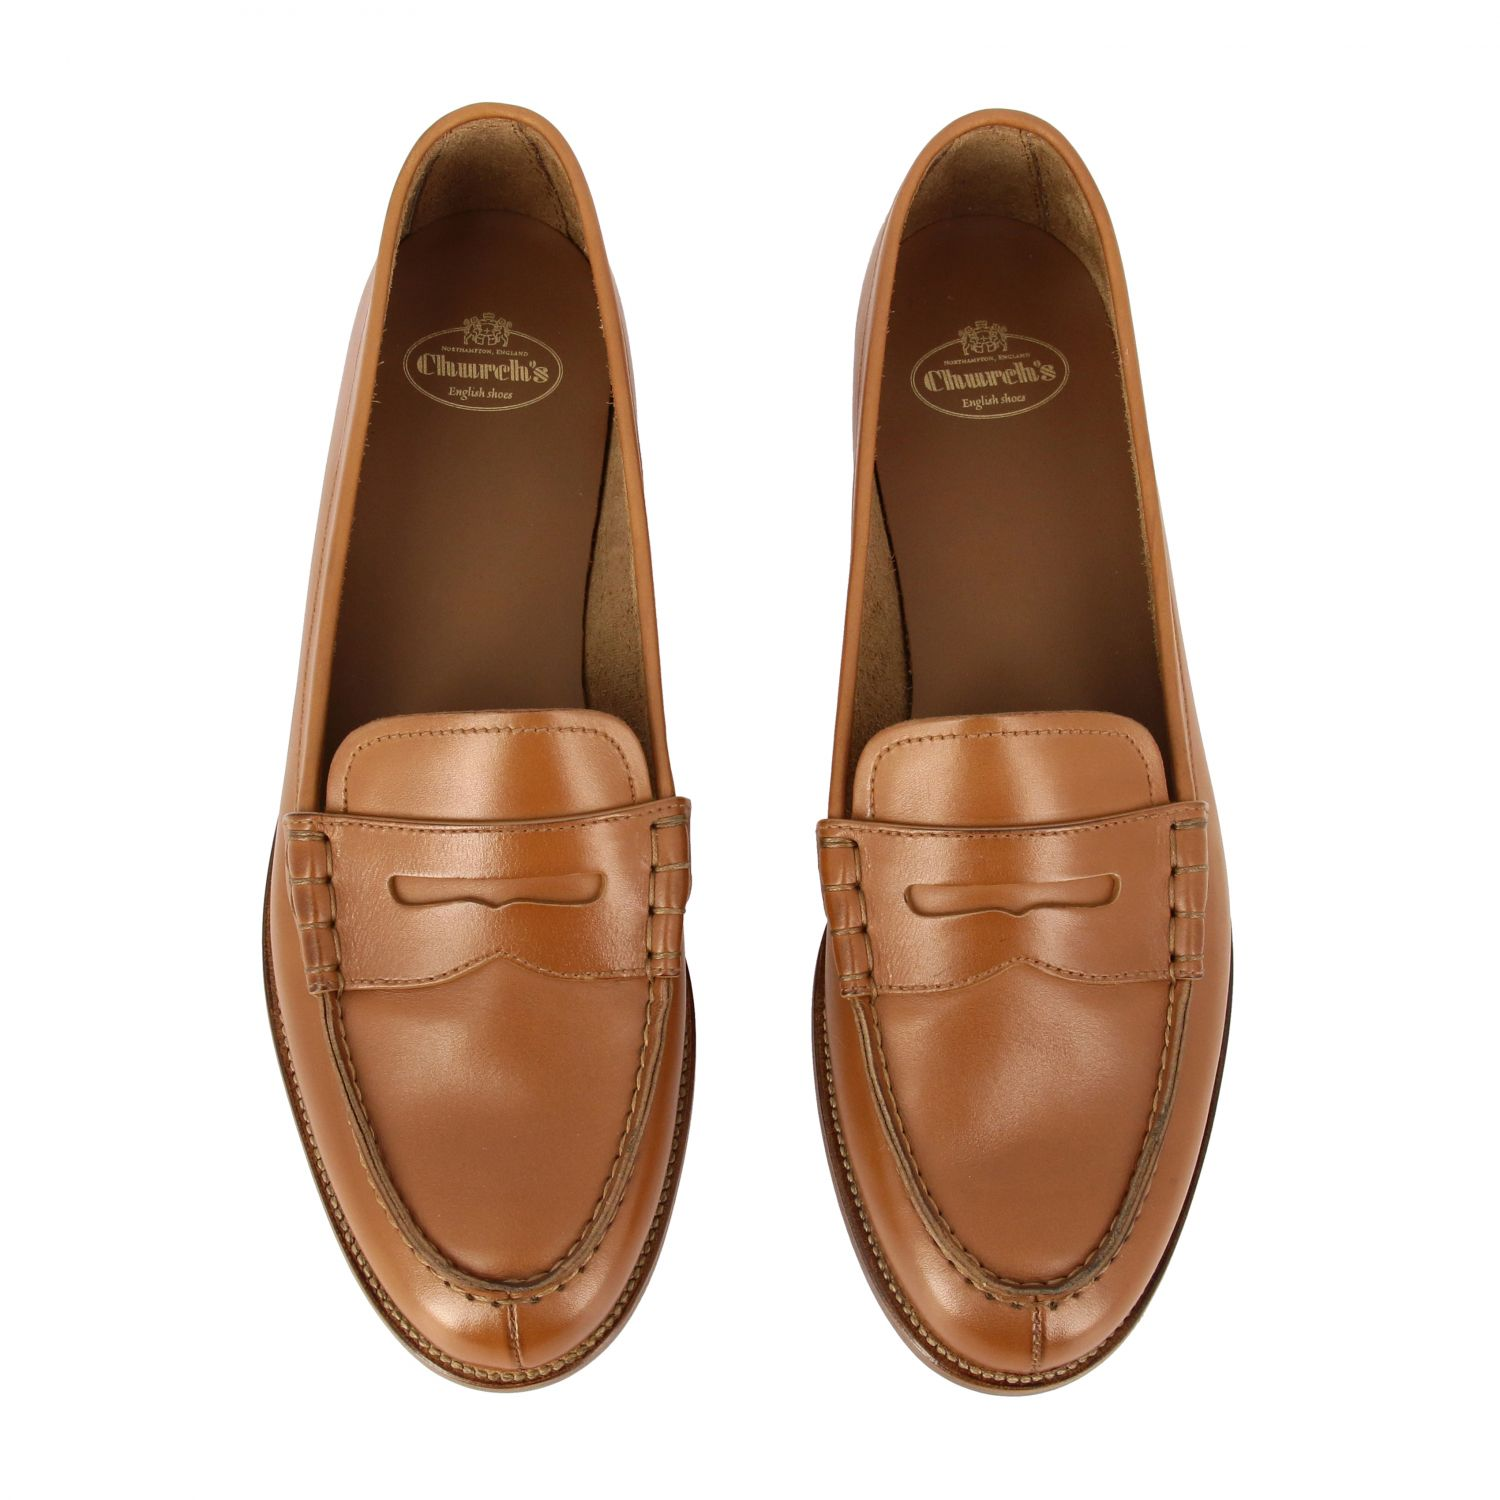 Loafers Church's: Shoes women Church's leather 3